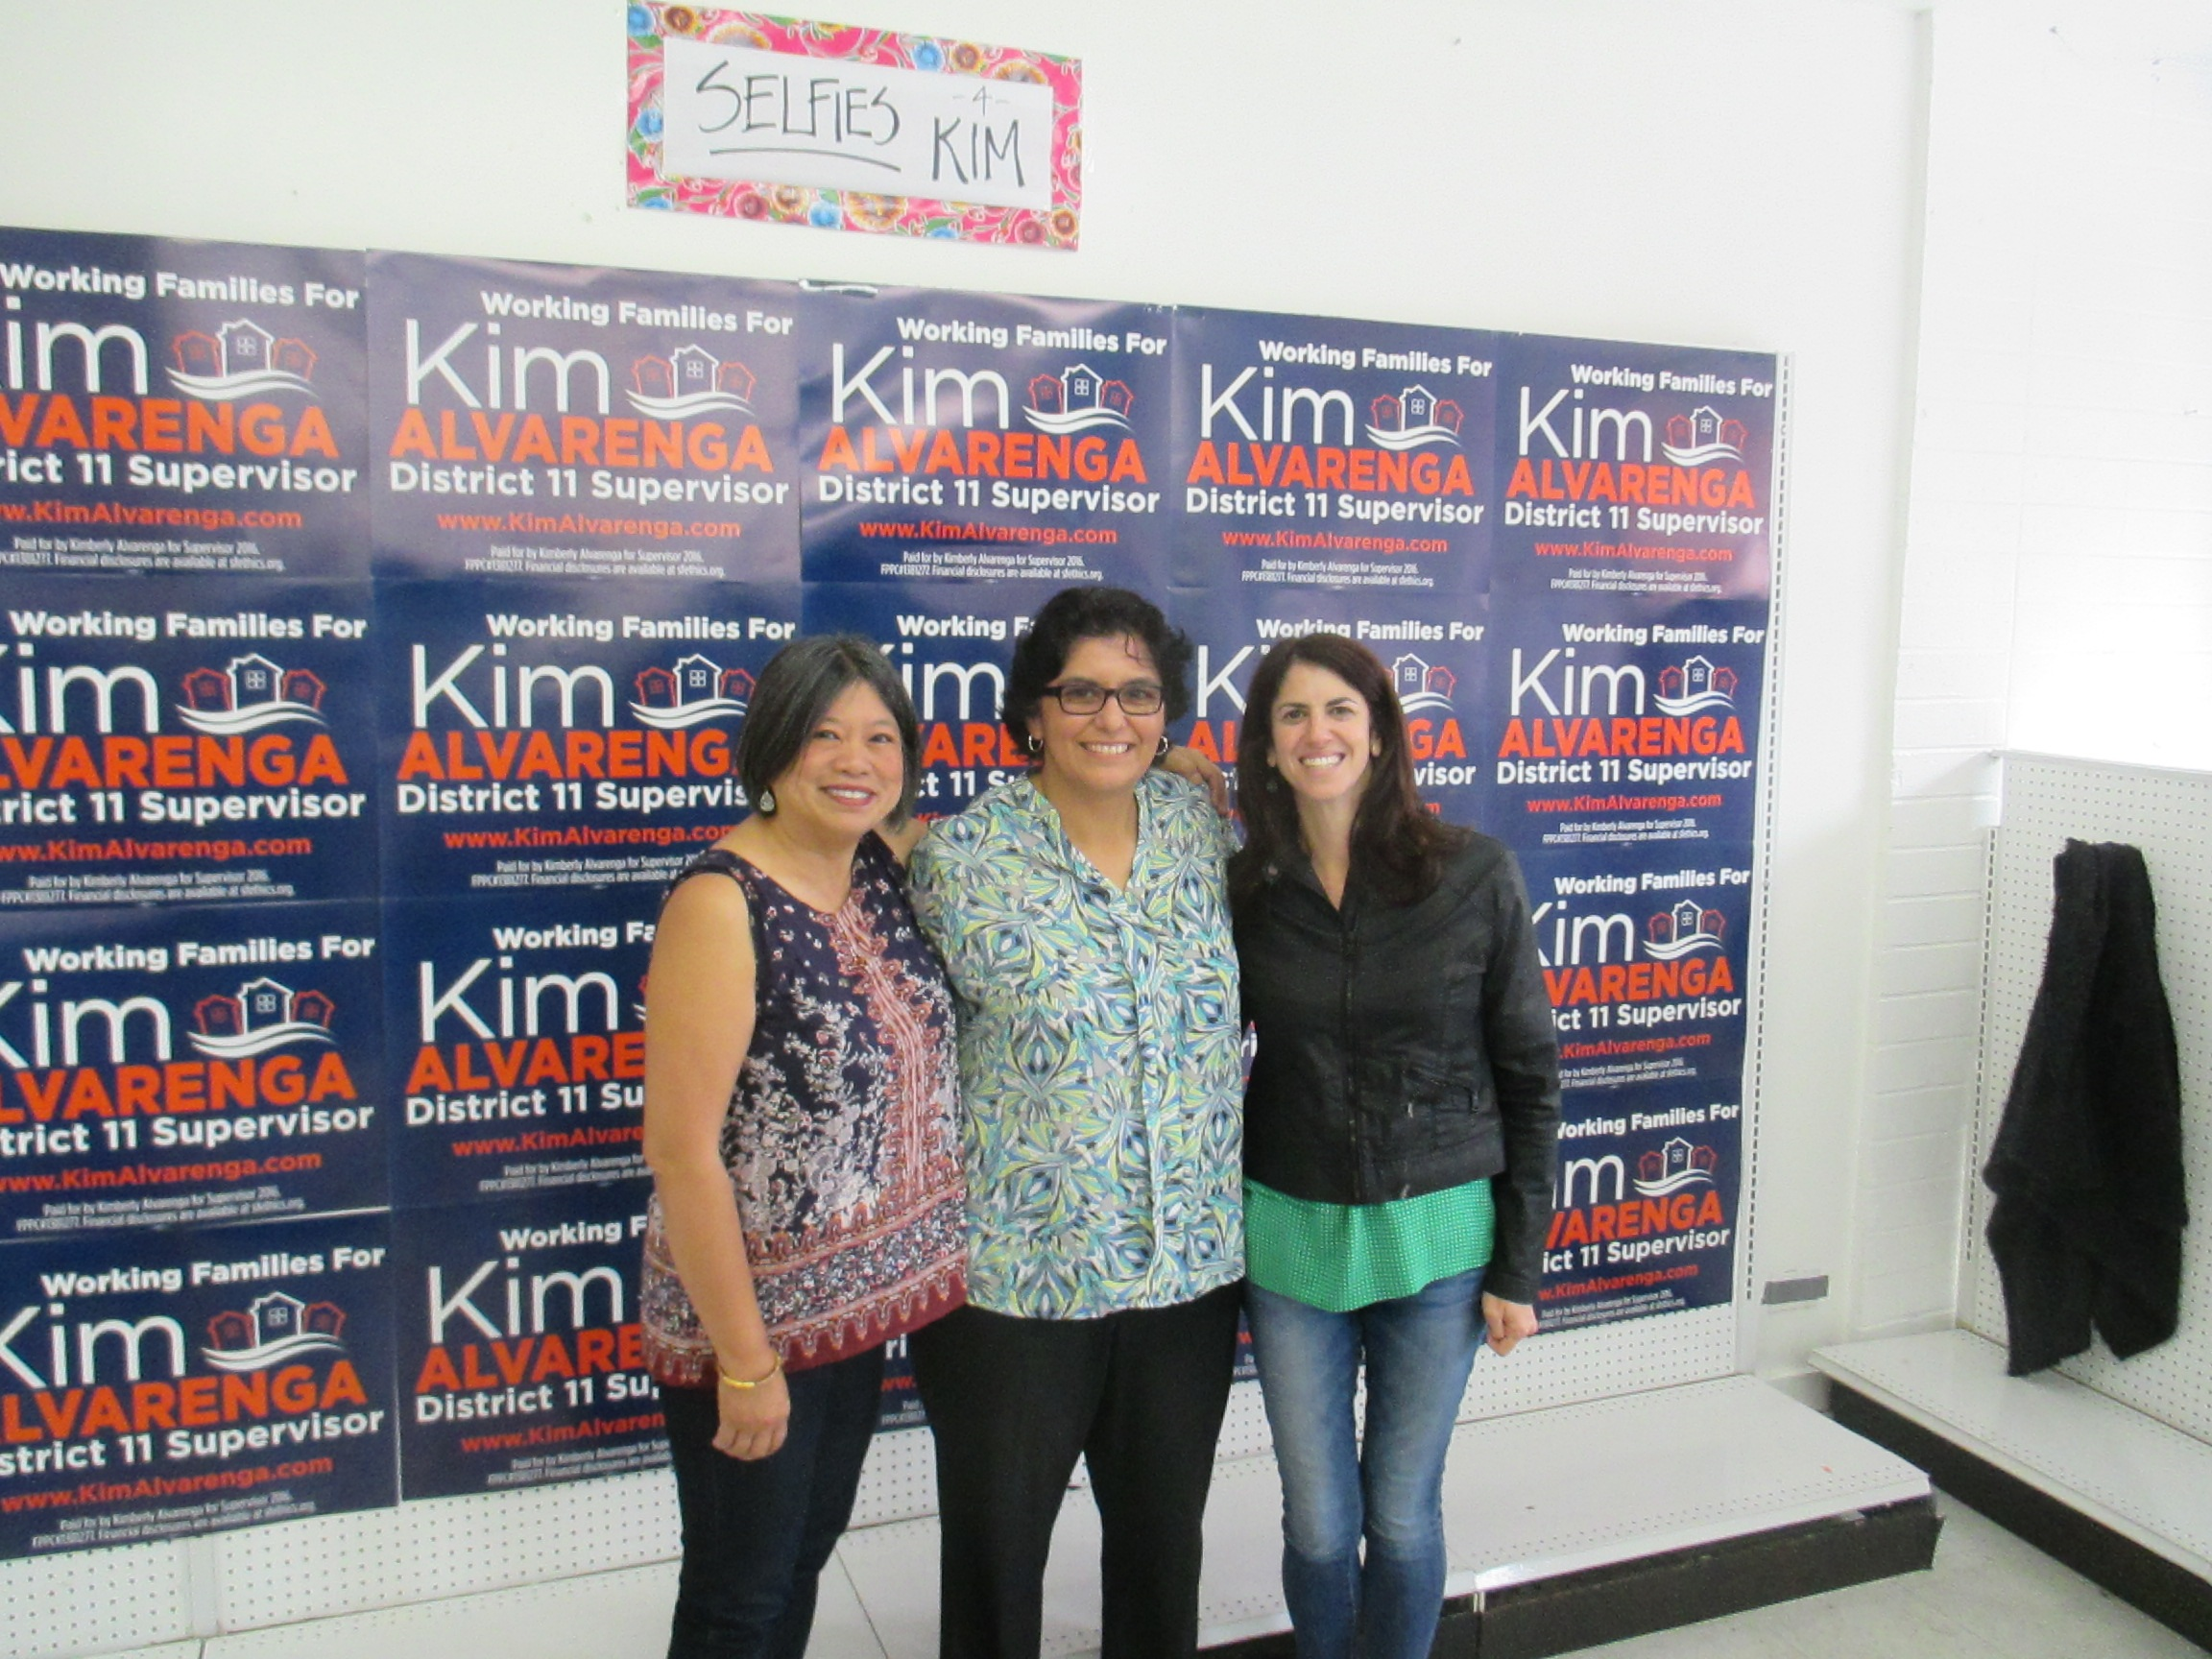 Sandy Fewer (d1), Kimberly An lvarenga (D11) and Hillary Ronen (D9) are part of the progressive slate for supe.